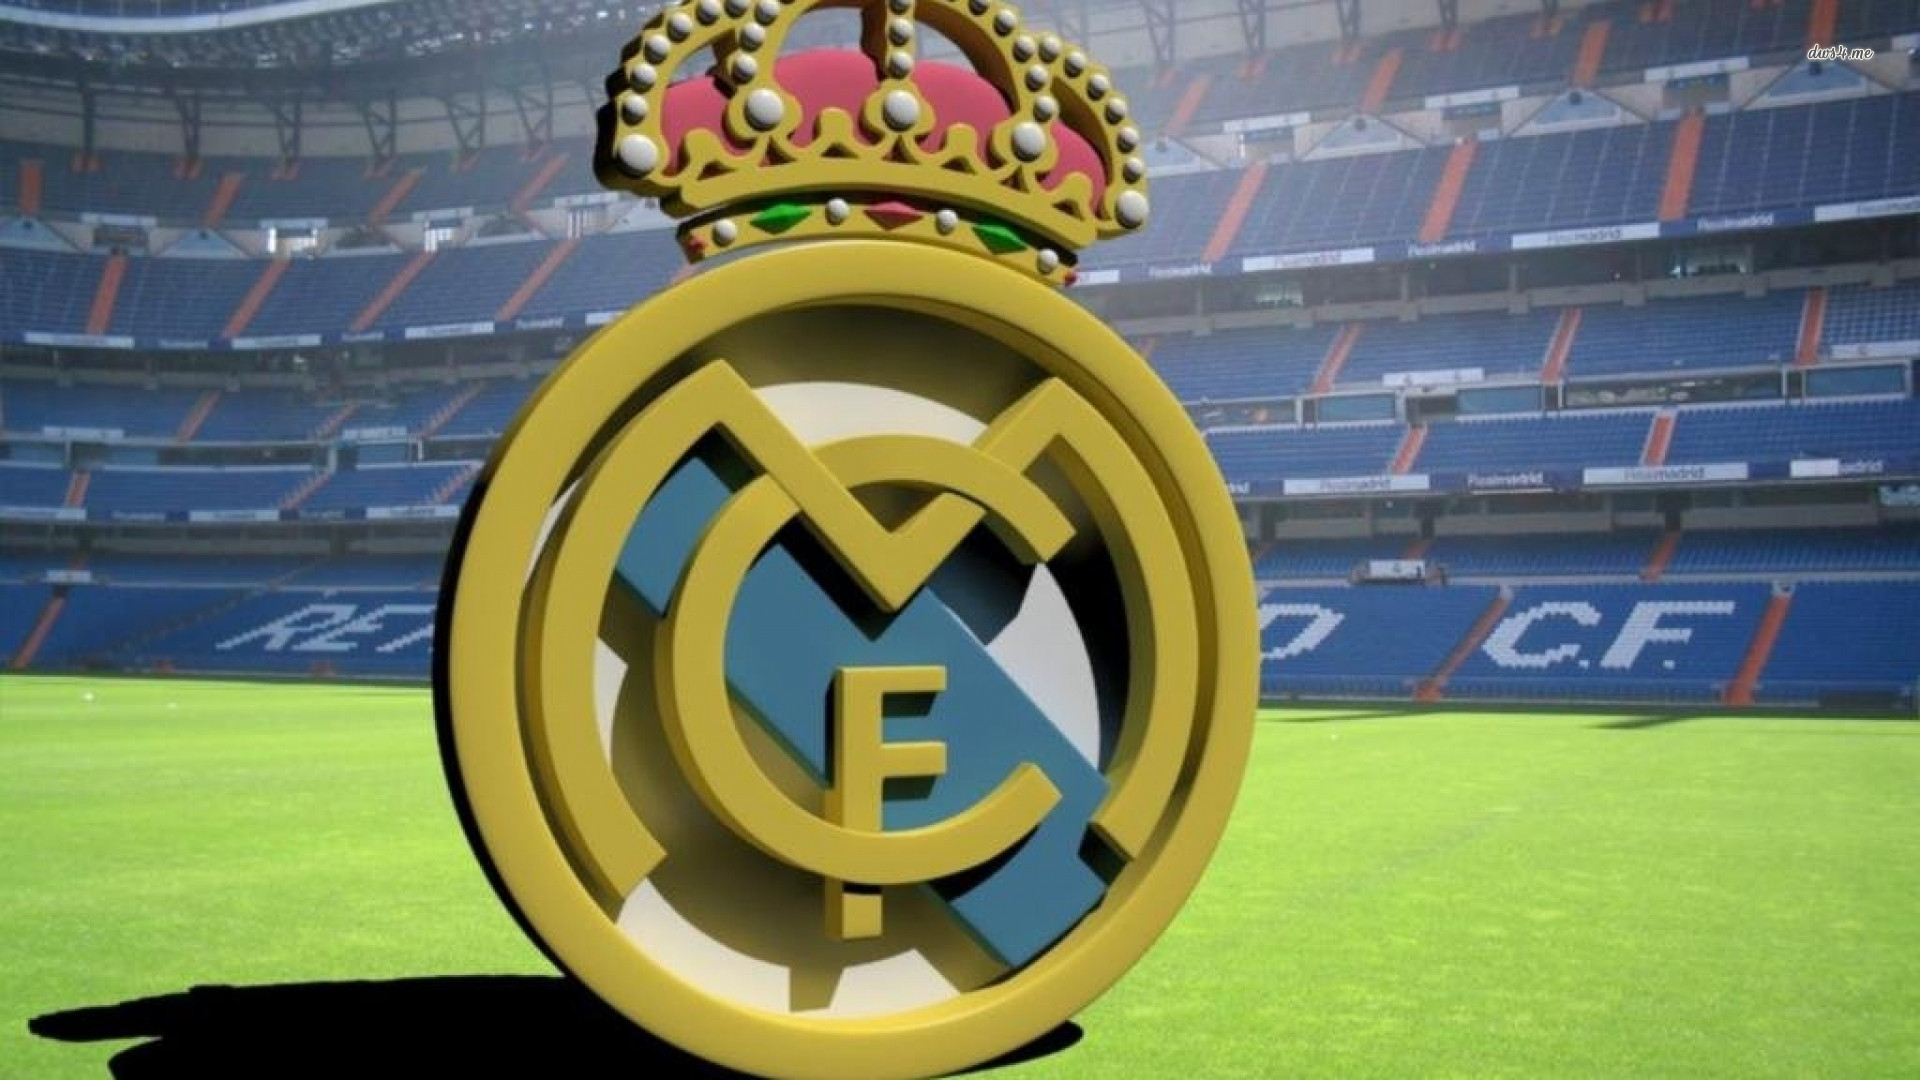 Res: 1920x1080, Real Madrid Logo Wallpaper HD 2016 | Wallpapers, Backgrounds, Images